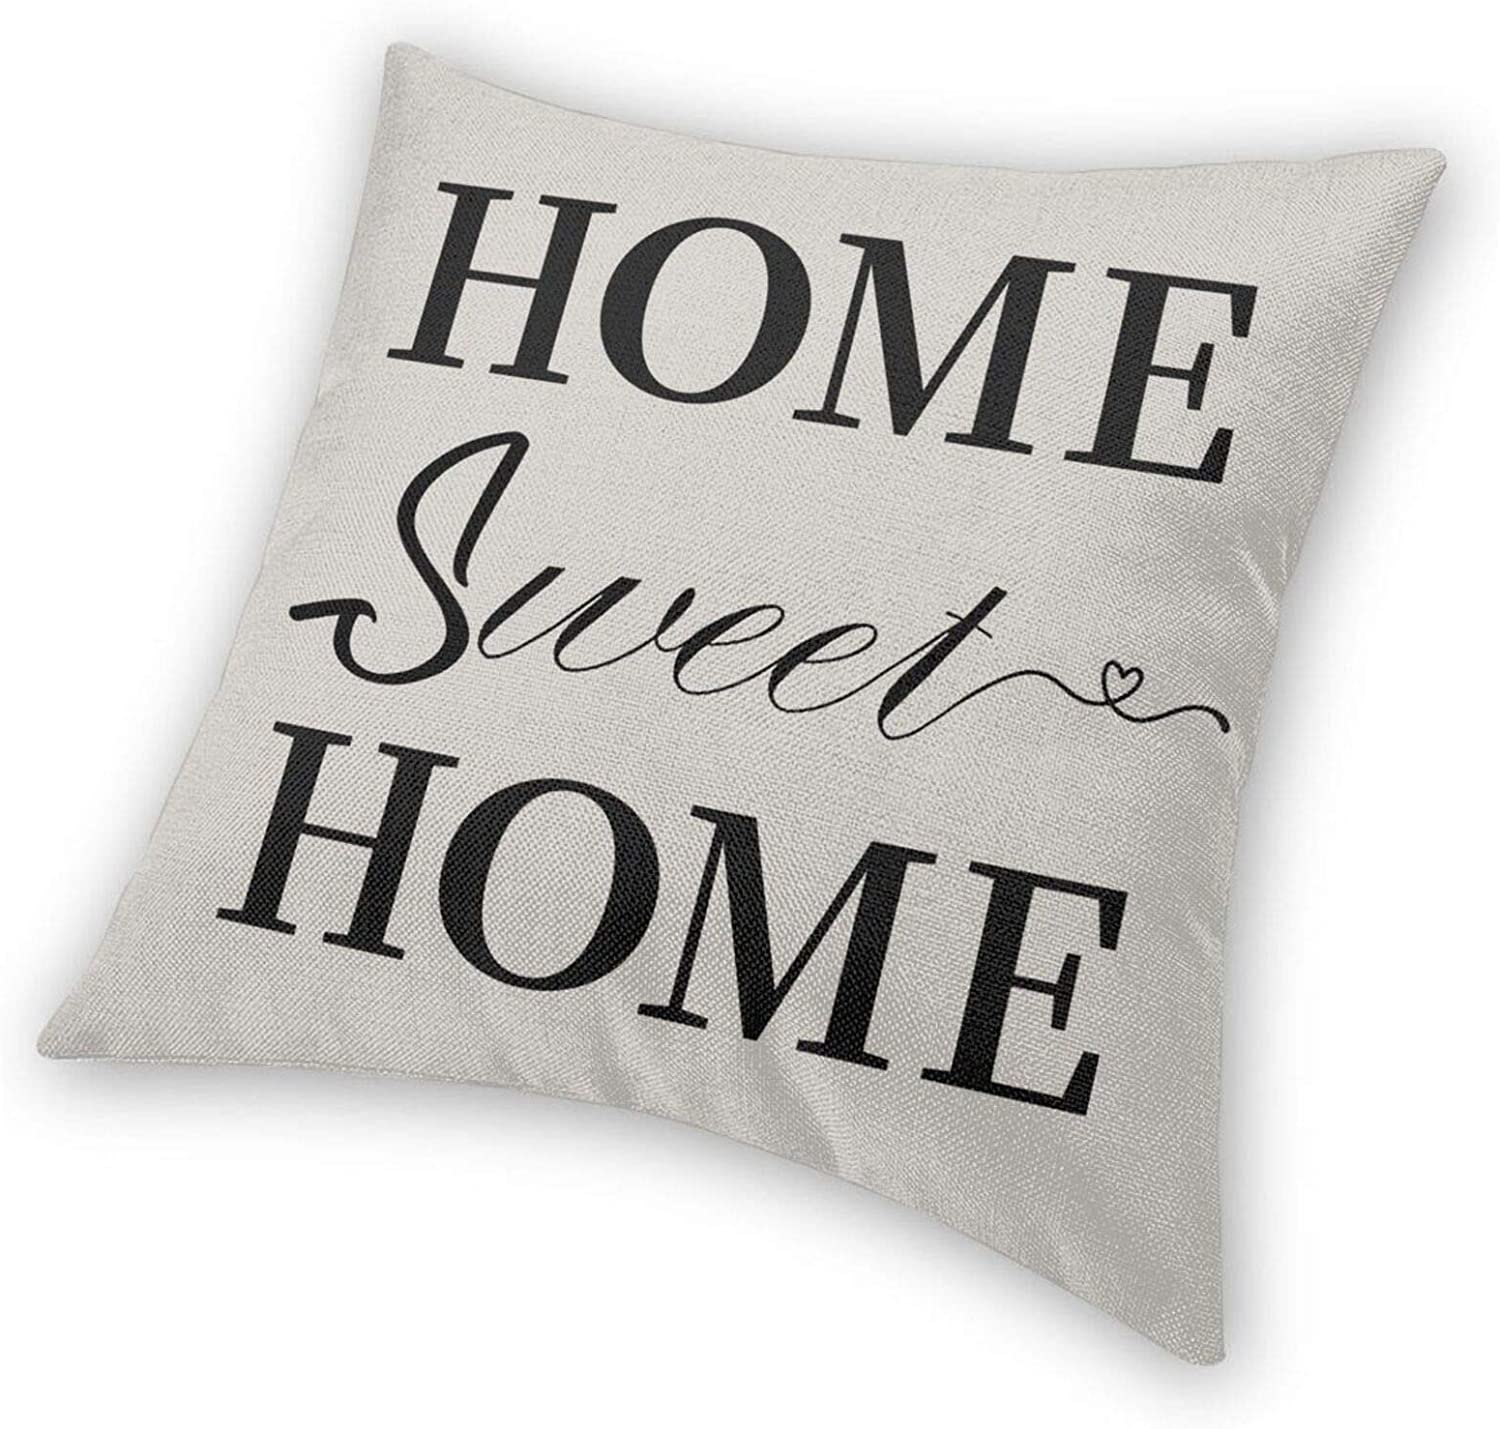 ZOZGETU Throw Pillow Covers 18x18 Home Sweet Home Pillow Cover Farmhouse Decor Pillow Cases Modern Decorative Square Soft Polyester Cushion Covers for Couch Car Bedroom Livingroom Sofa Chair